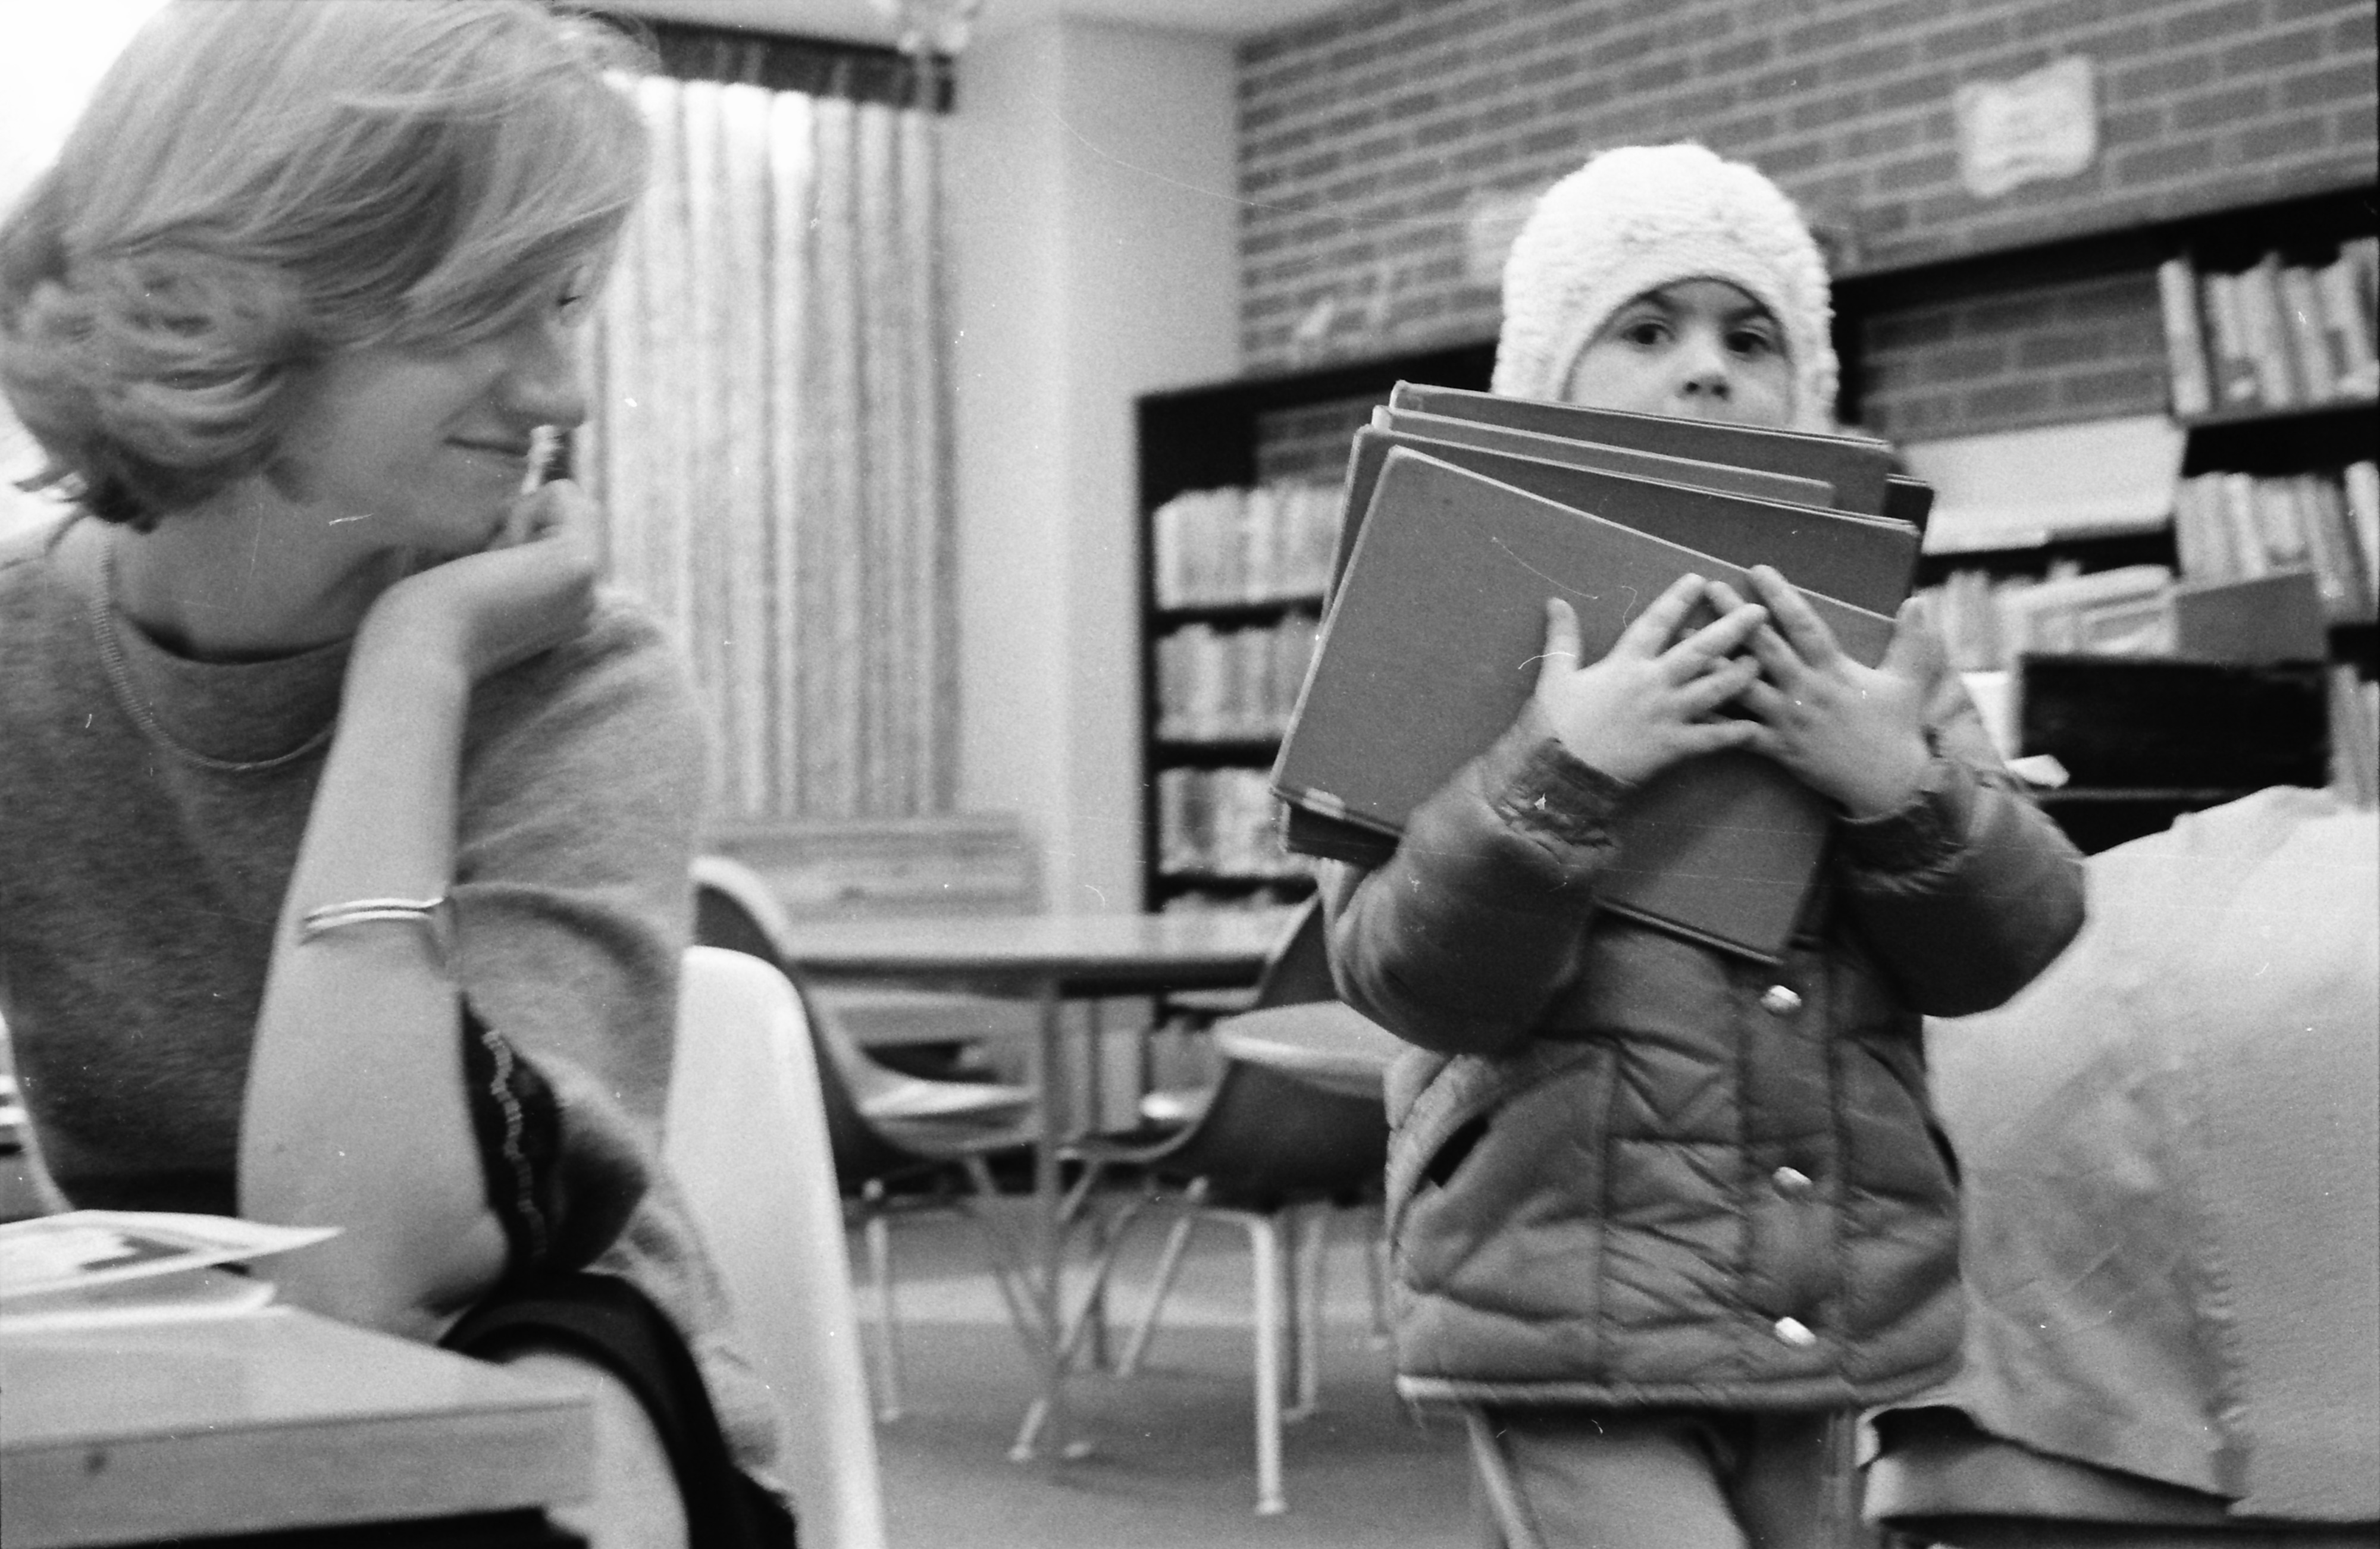 Kara More Taking Home a Big Stack of Books, Ann Arbor Public Library, March 1977 image